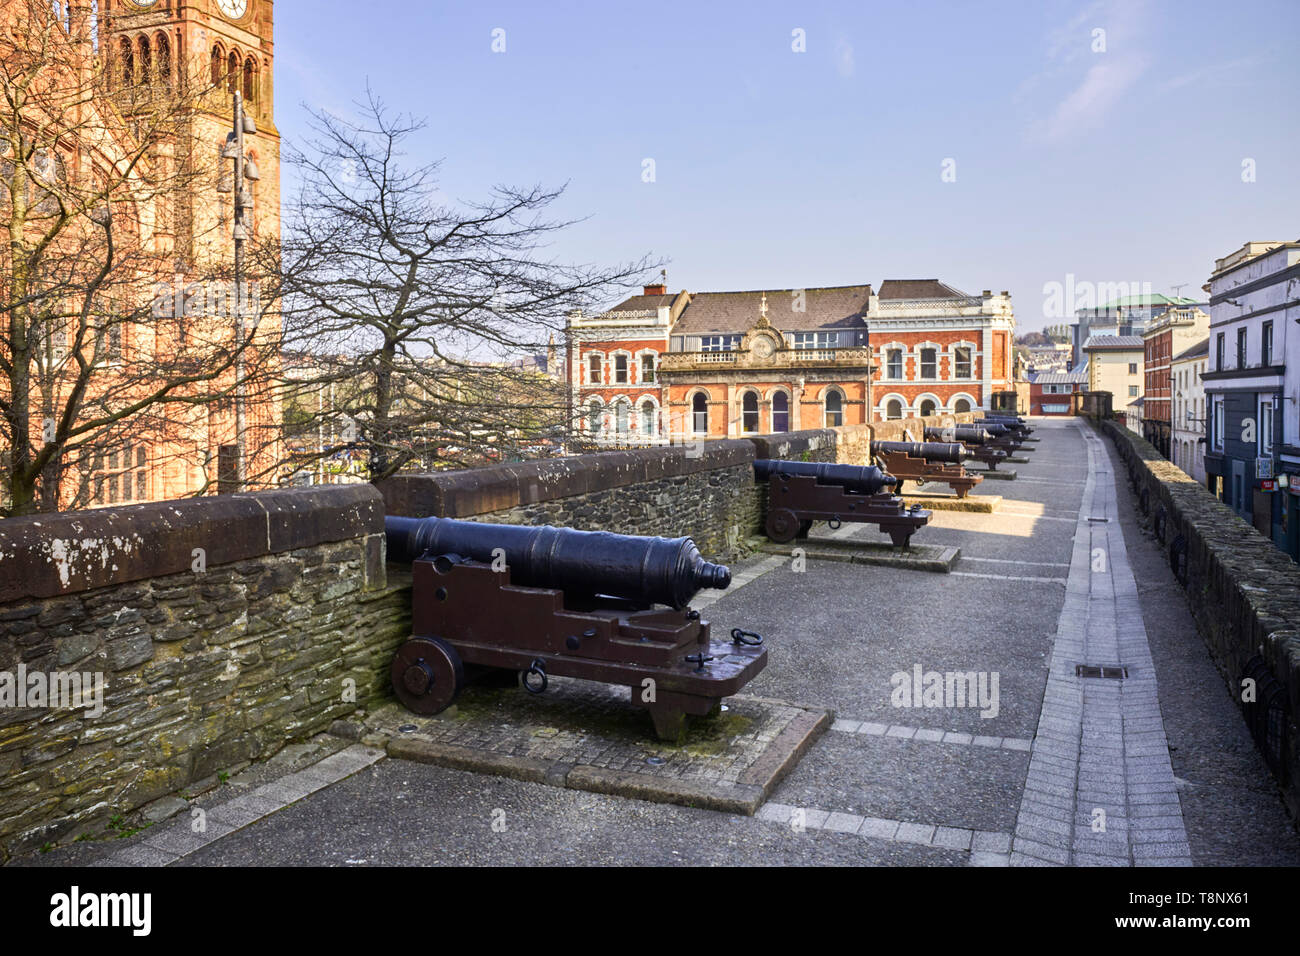 Canons on the city walls of Londonderry, Northern Ireland - Stock Image